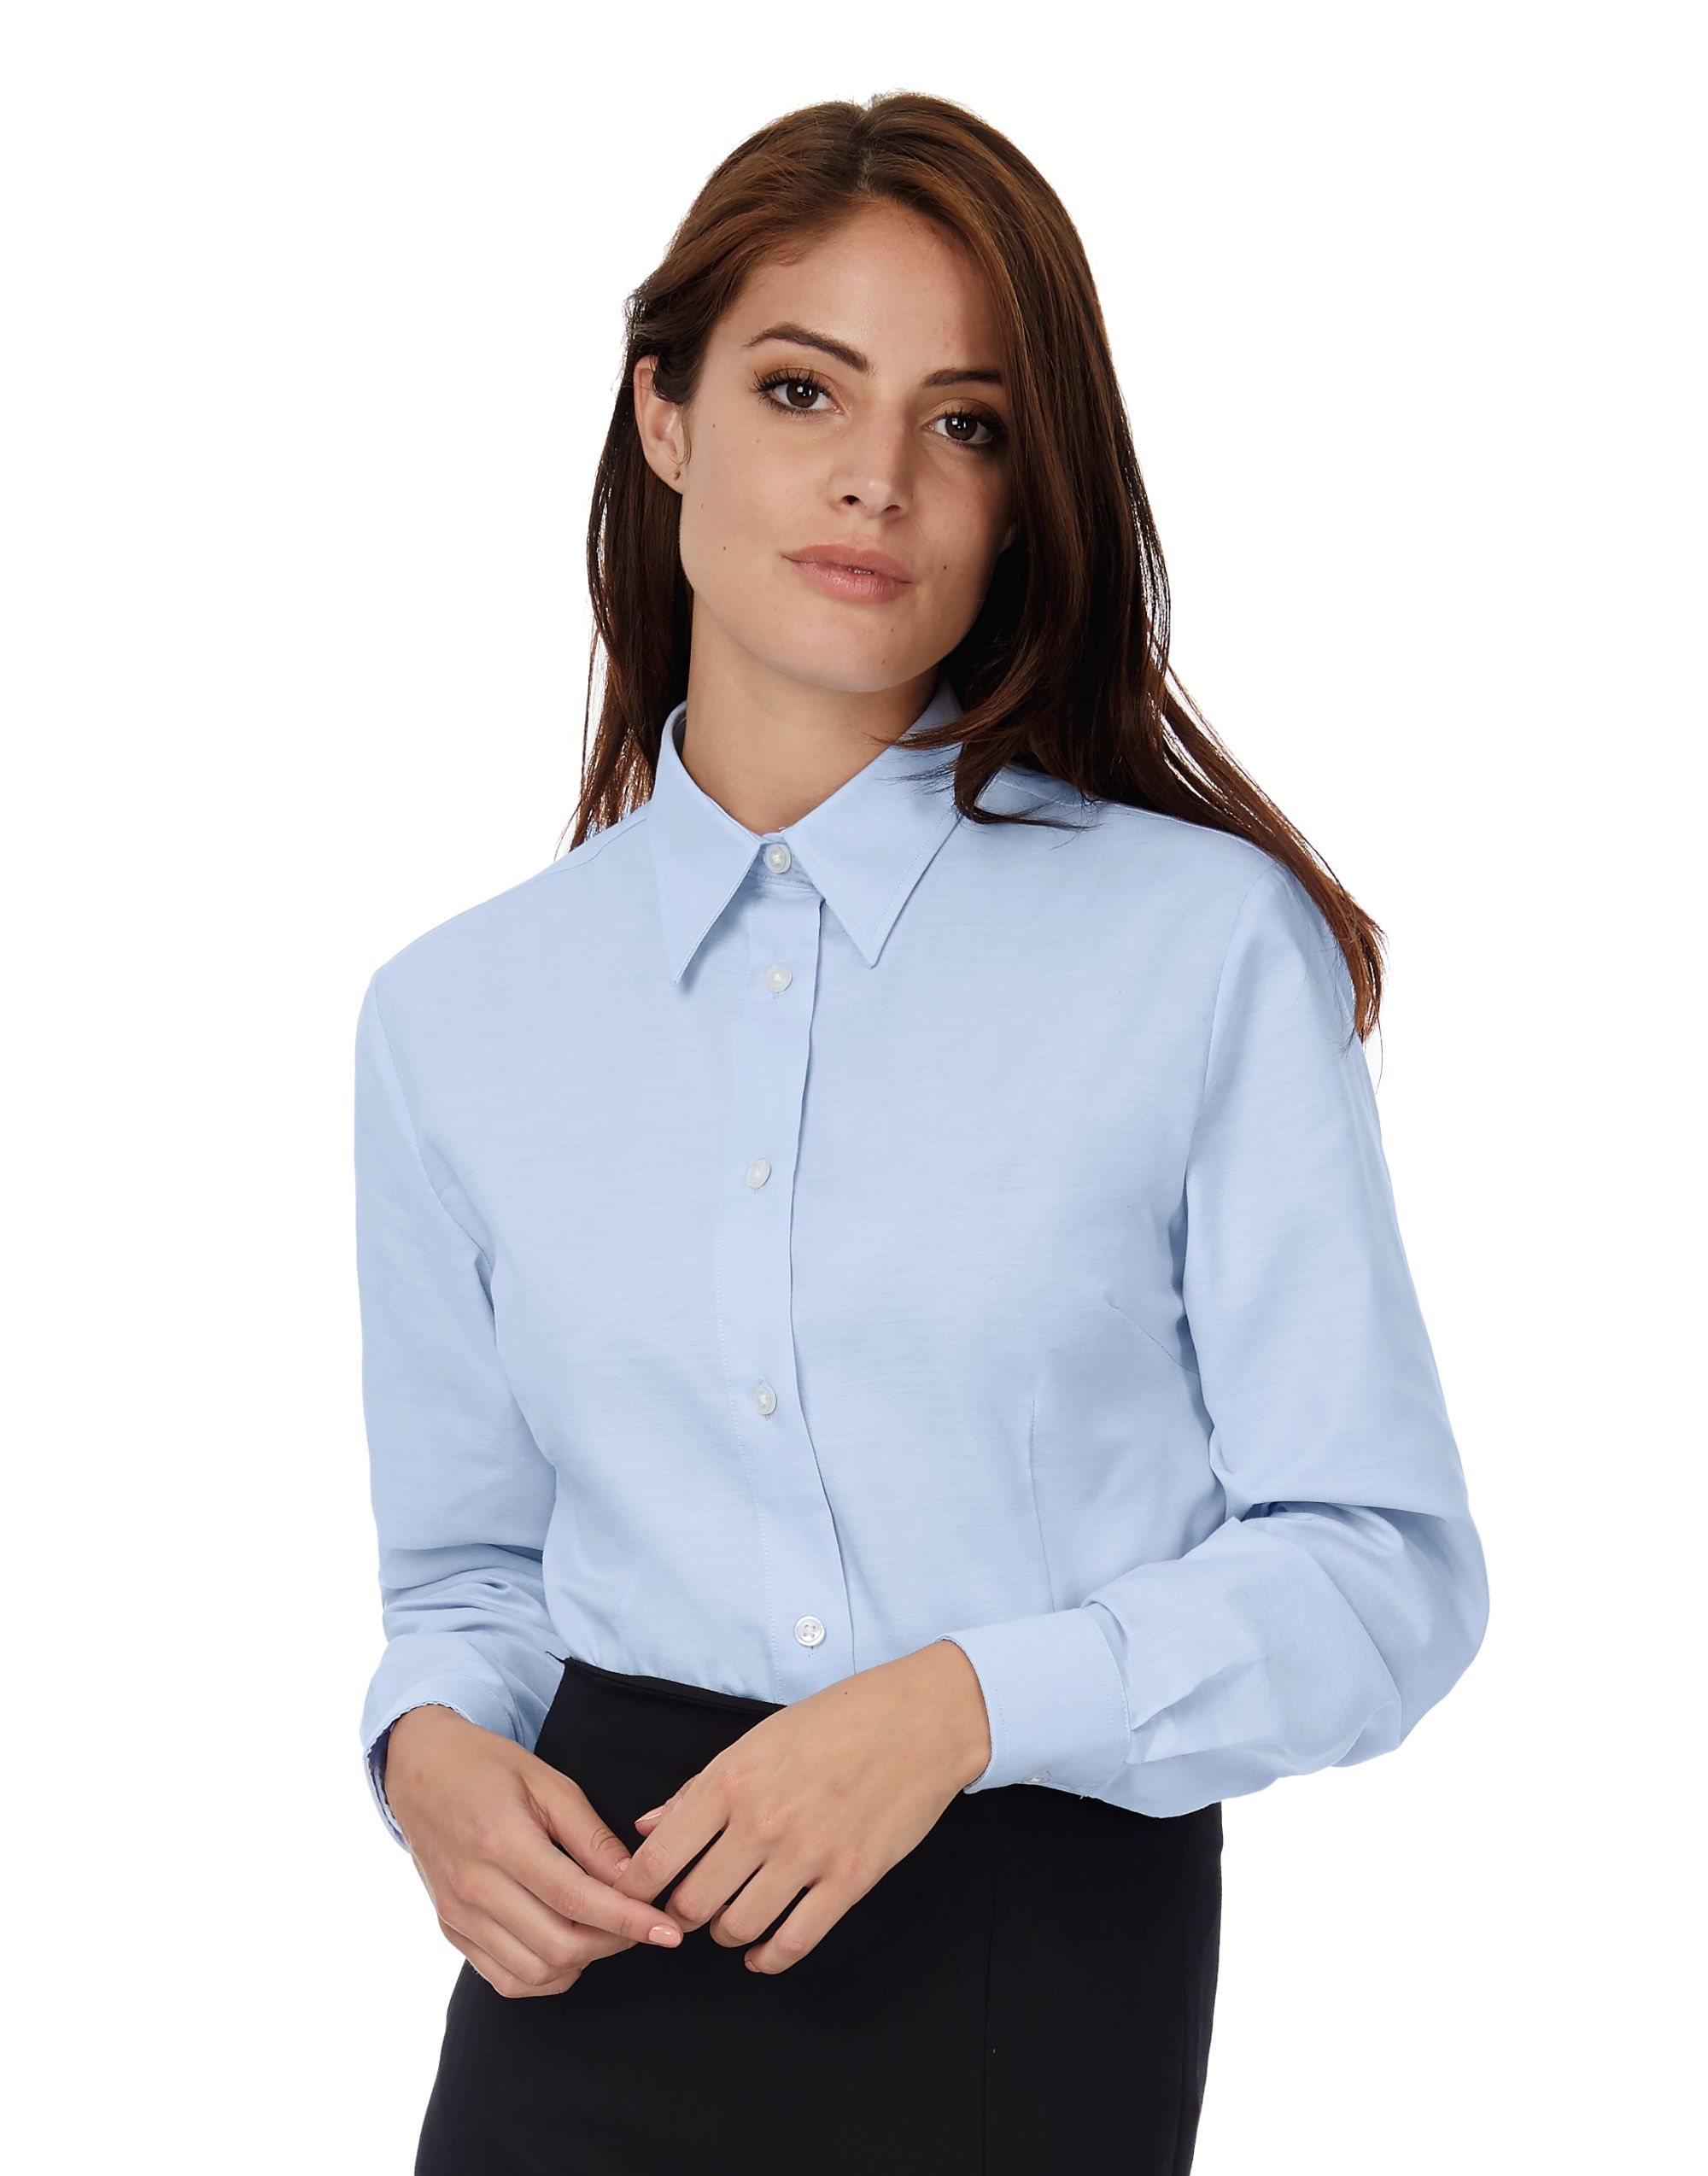 B&C Women's Oxford Long Sleeve Shirt